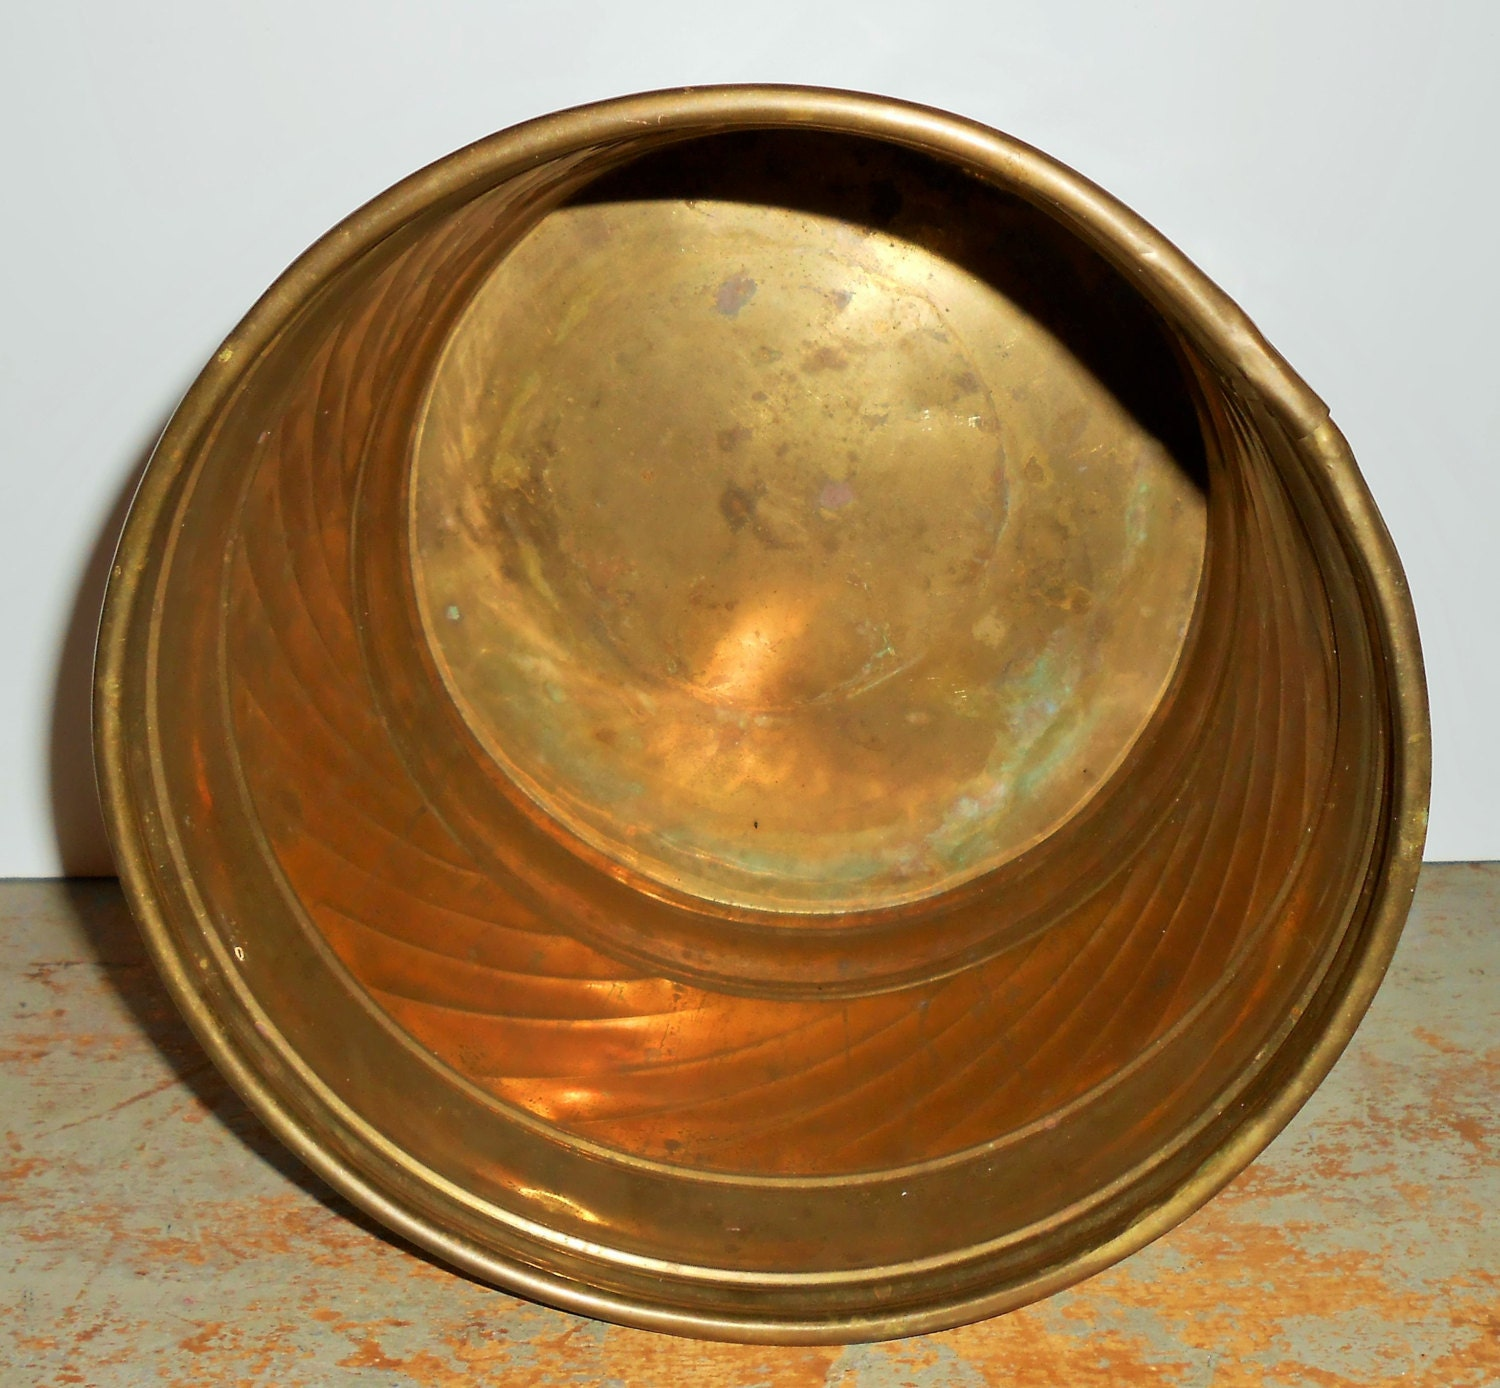 Vintage Planter Brass Pot Flower Pot Brass Decor